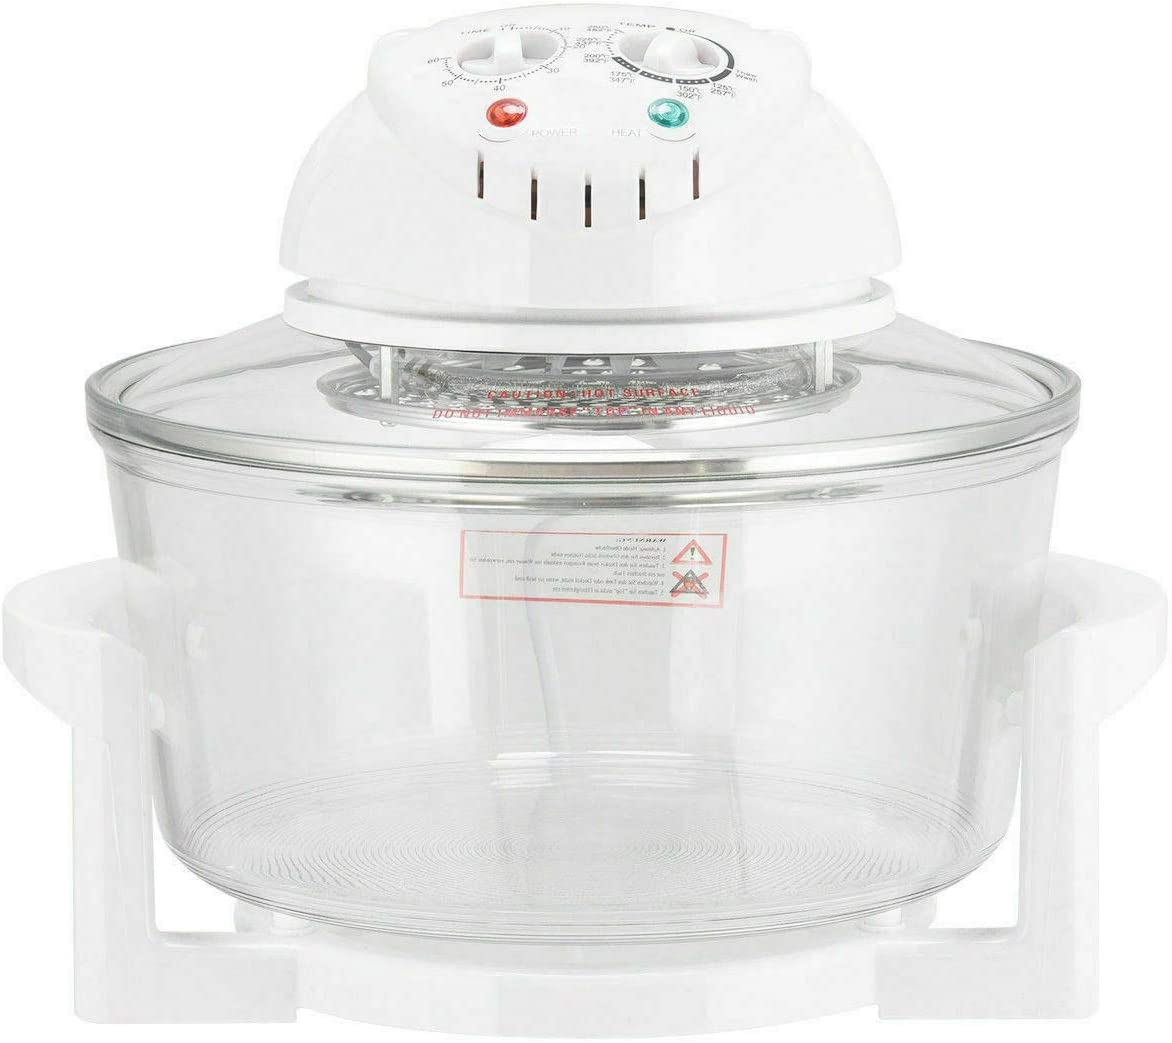 Cypress Shop Convection Halogen Oven Cooker Infrared Turbo Cooking Glass Bowl 1300 Watt 12.68-18 Quart For Roast Bake Broil Stream Fry Food Kitchen Tools Utensil Tools Safe Clean Home Stuffs